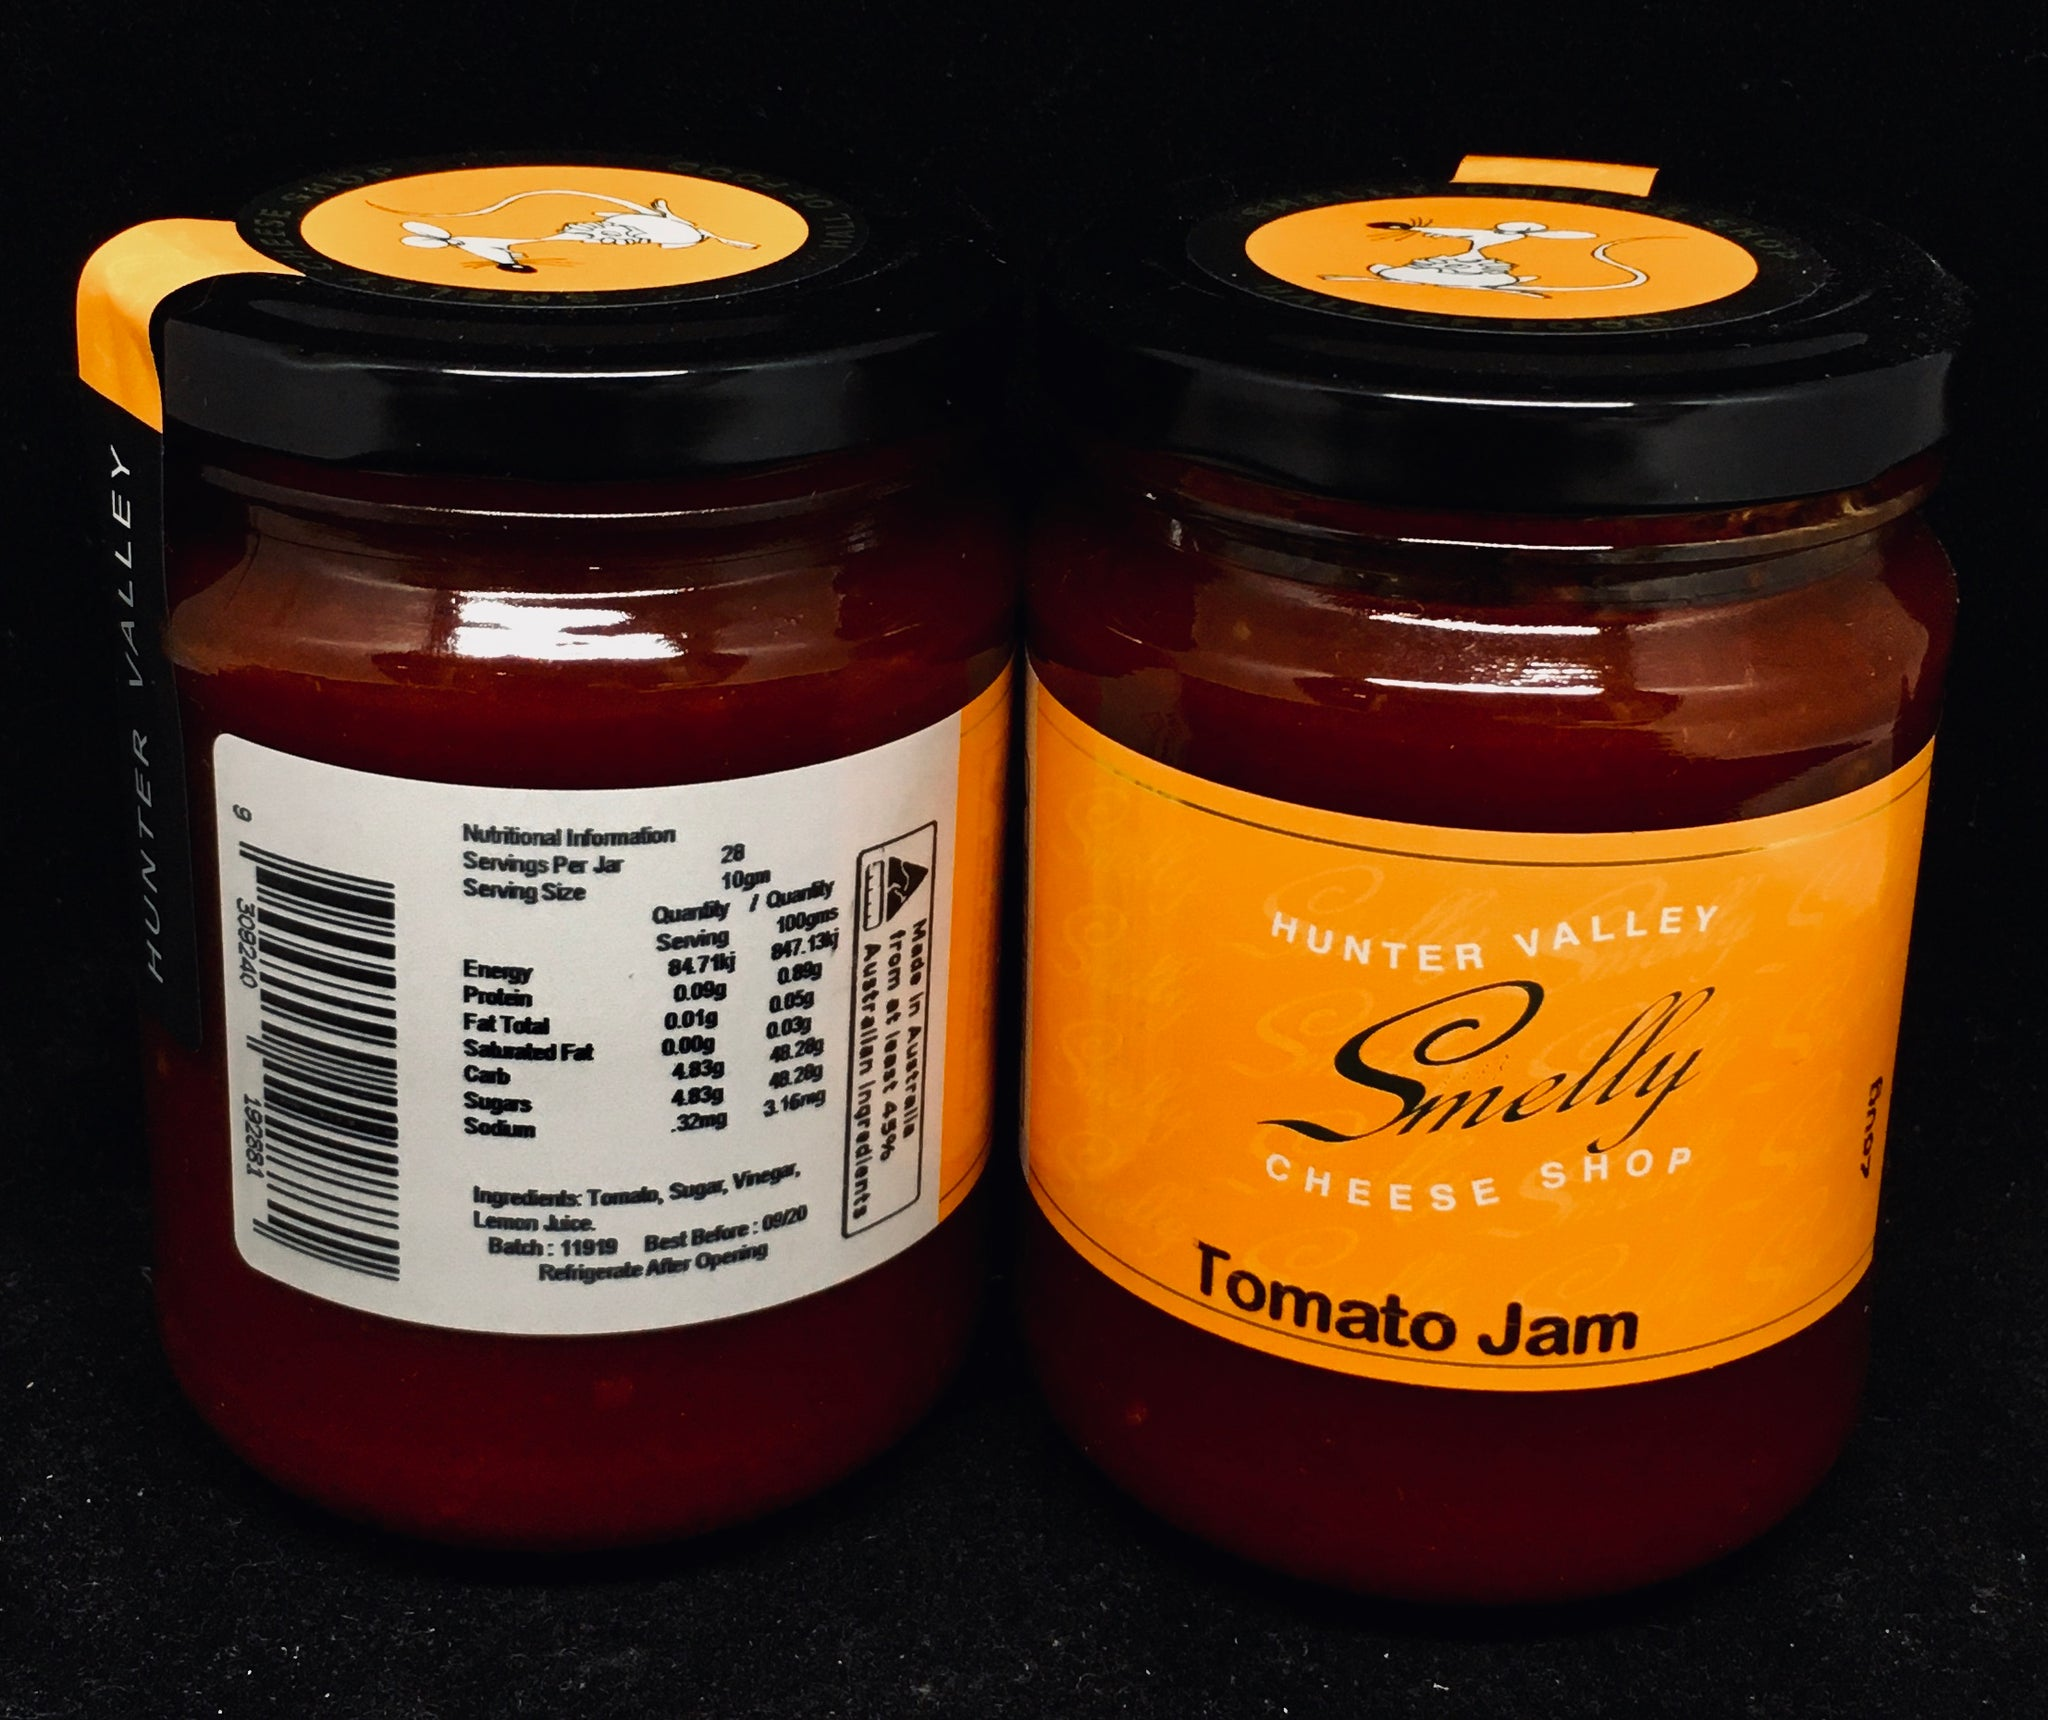 Hunter Valley Smelly Cheese Shop - Tomato Jam